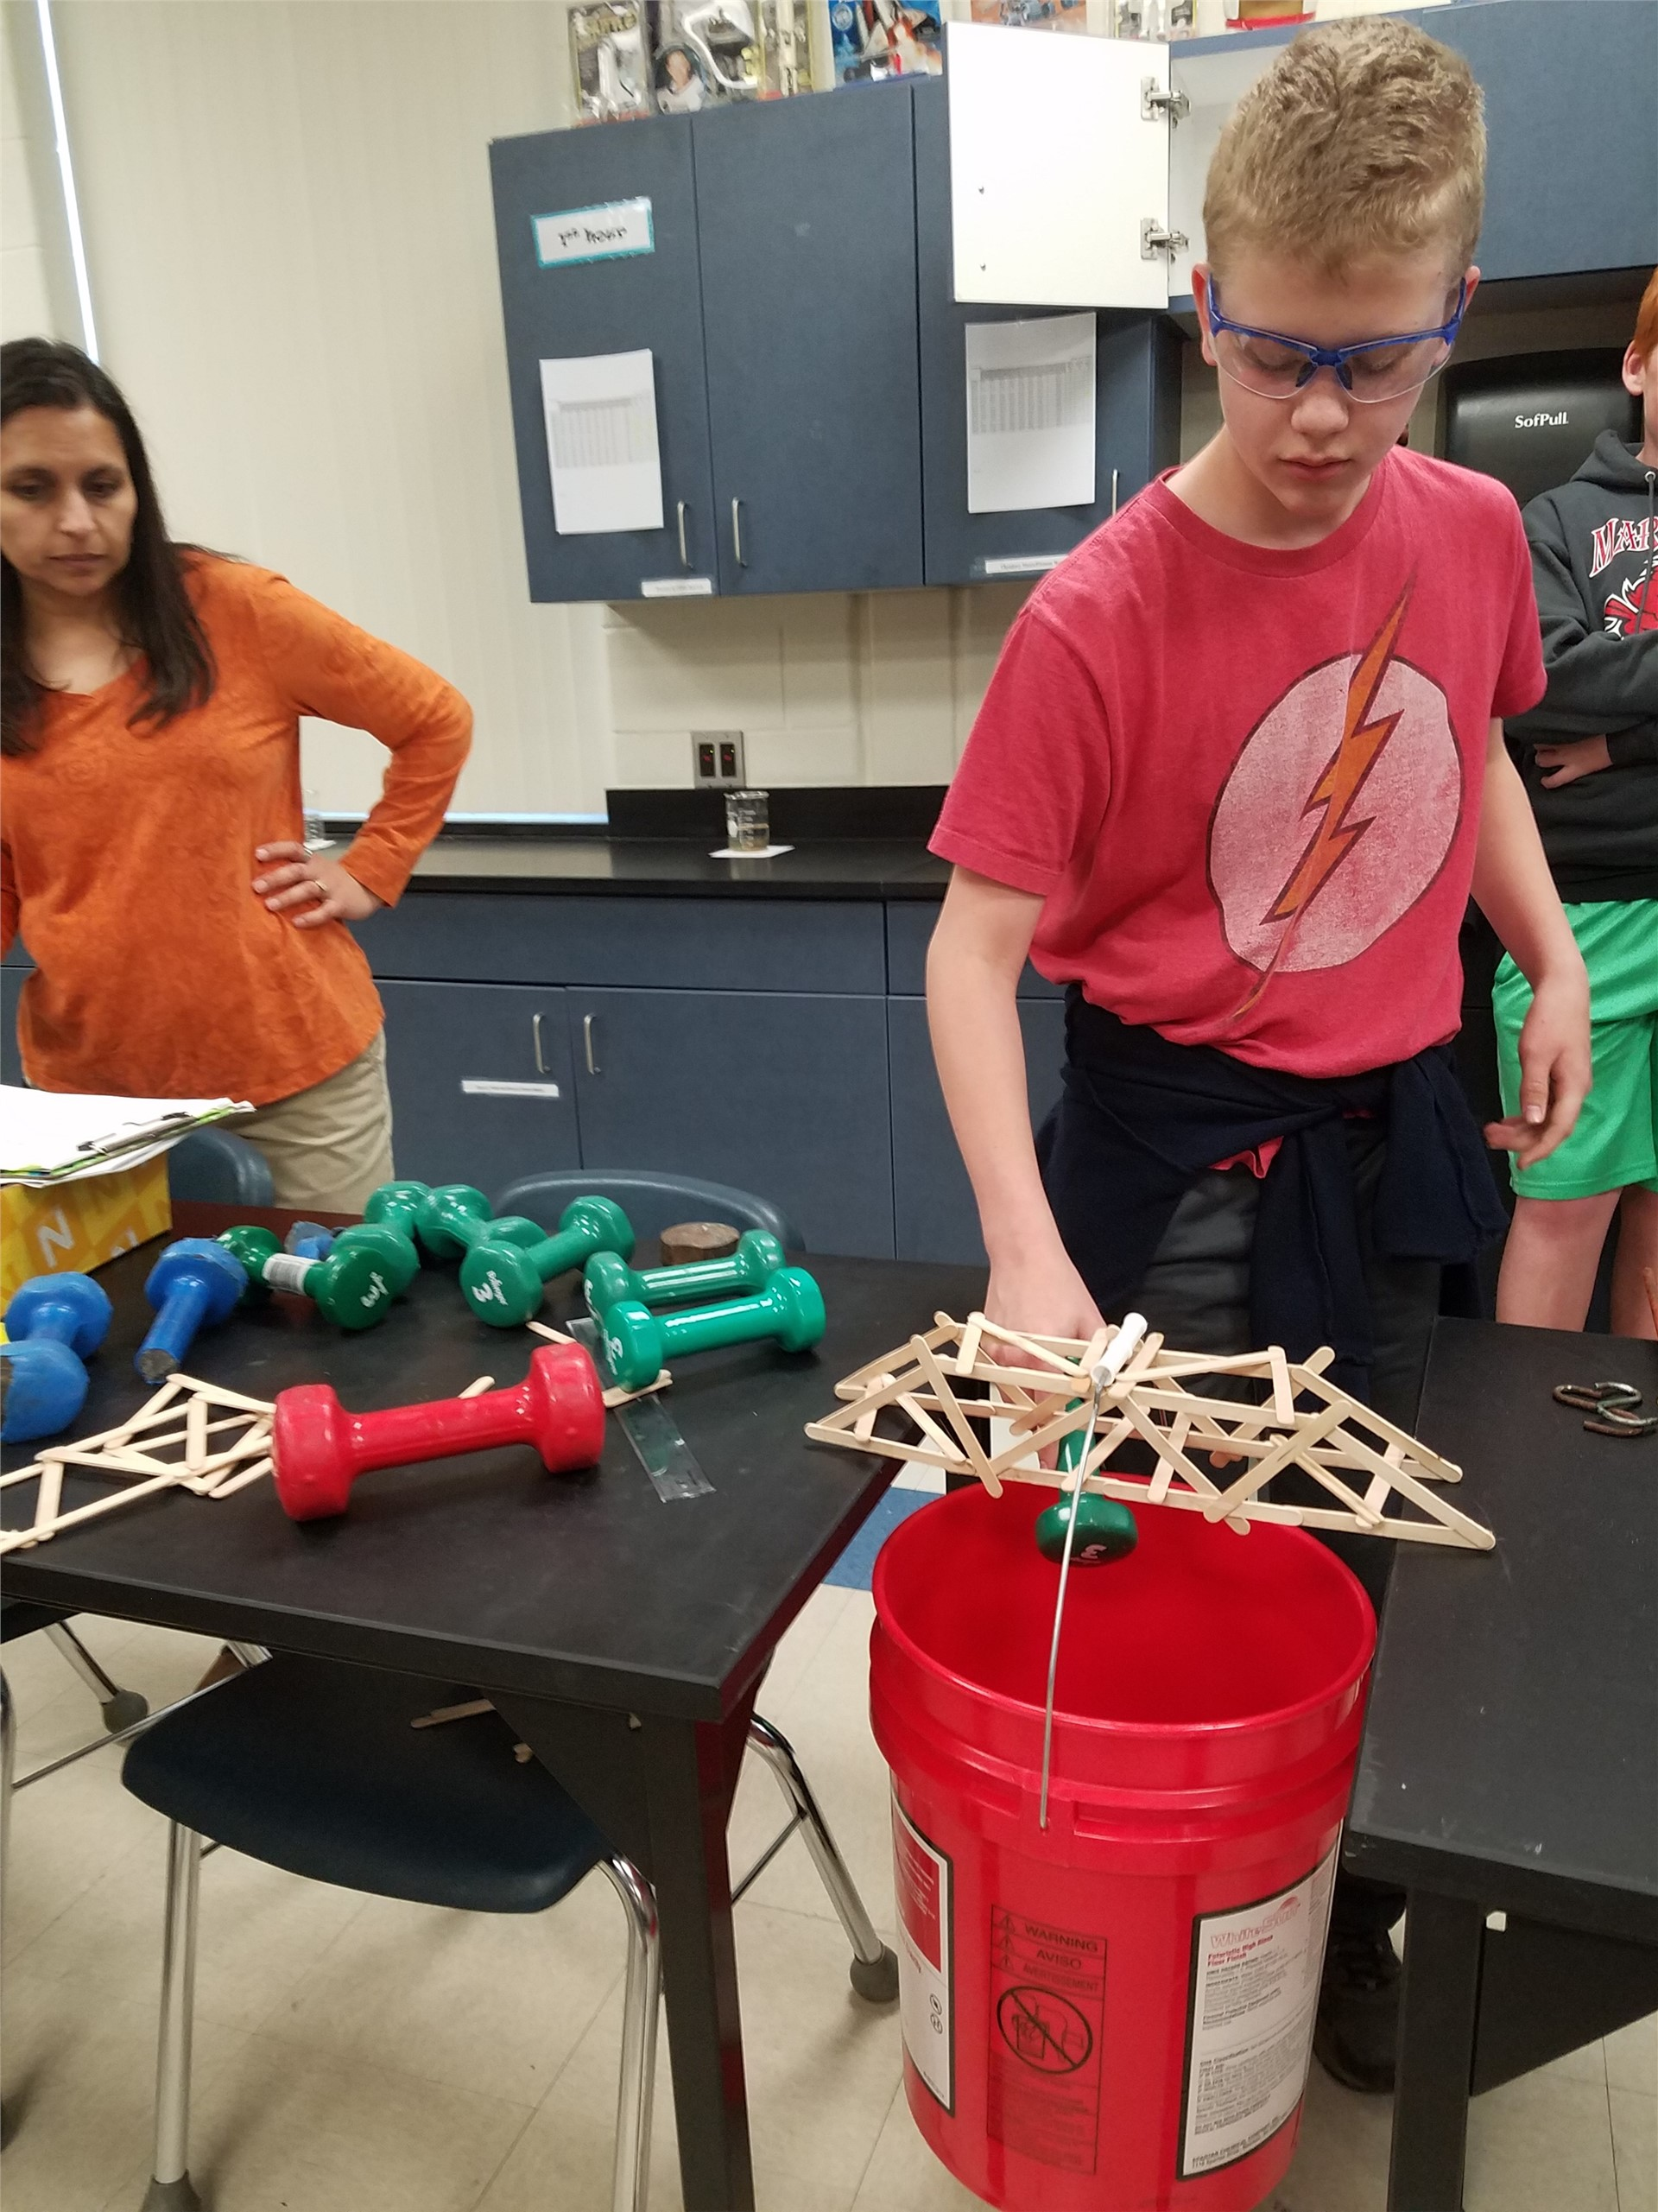 MS Students working on Science Project2